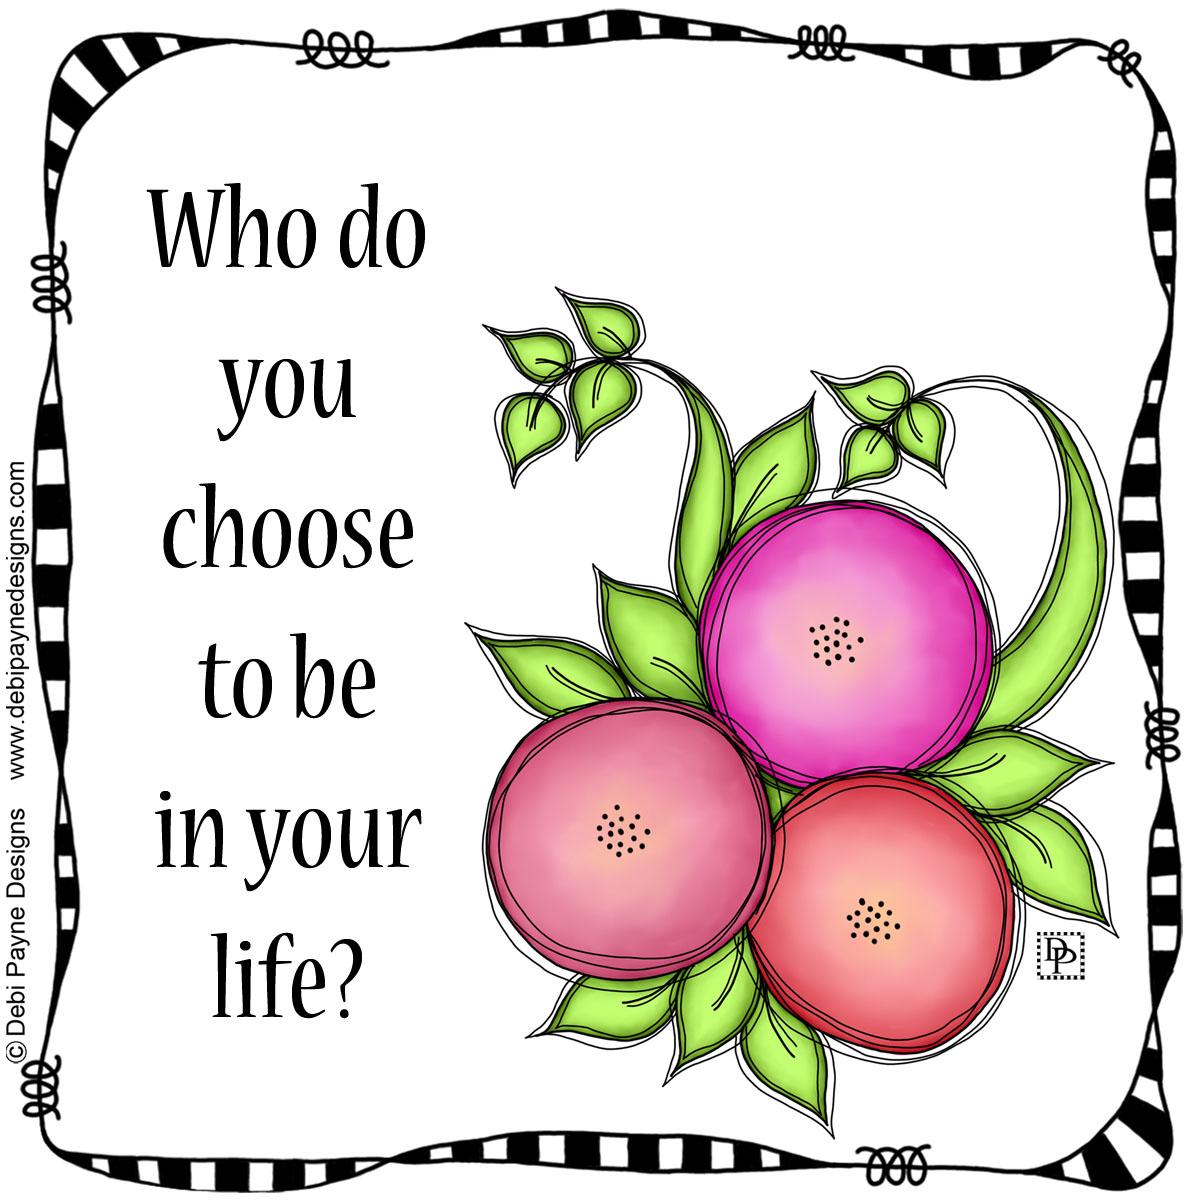 Image: Awake Doodle Flower with Life Question